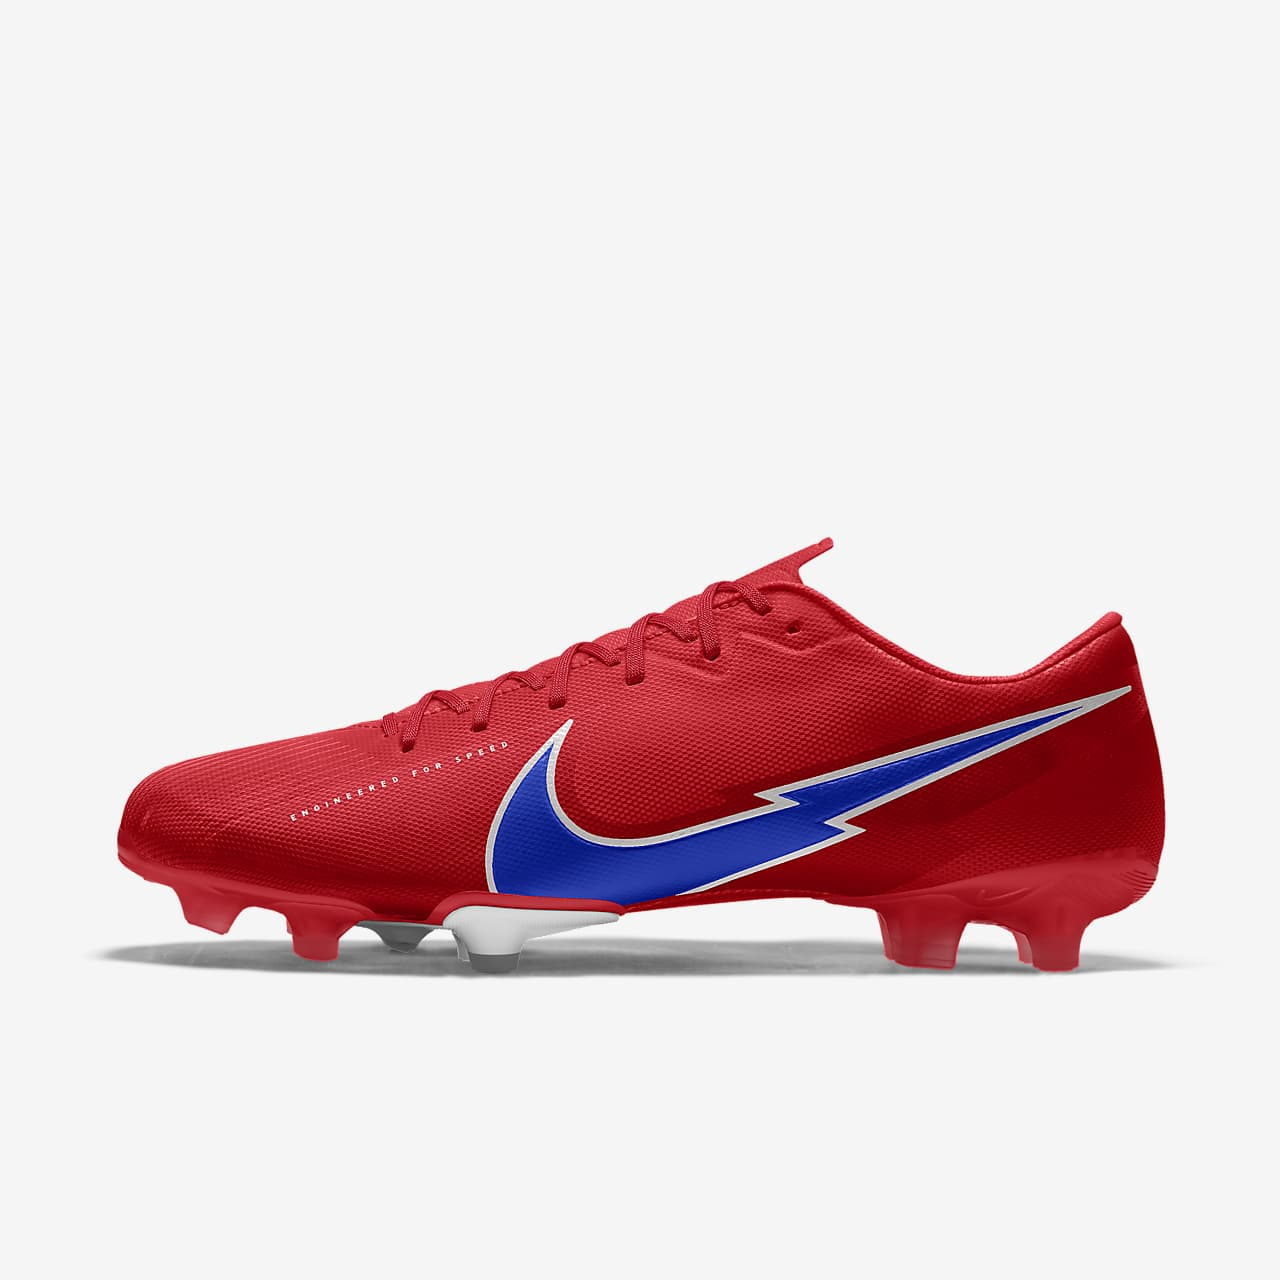 Nike Mercurial Vapor 13 Academy By You Custom Firm-Ground Soccer Cleat